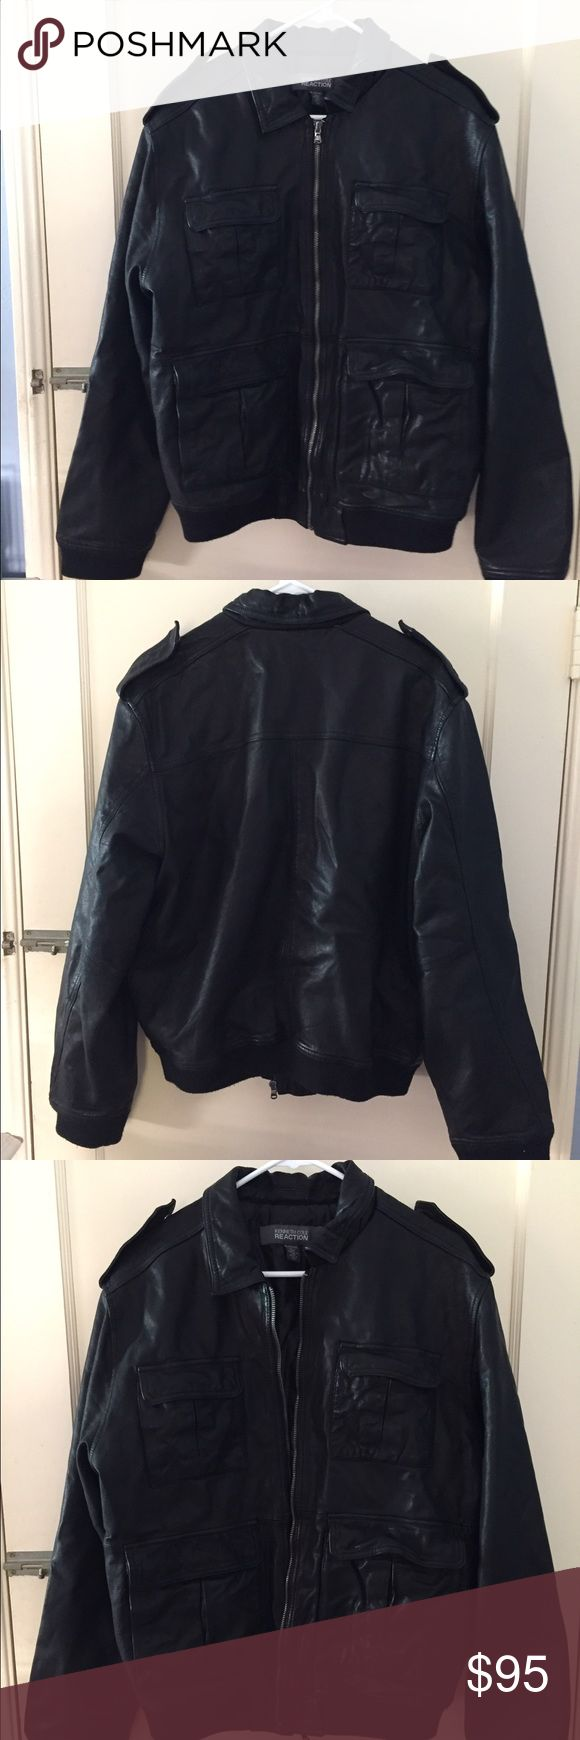 Kenneth Cole Reaction Men's Faux-Leather Jacket Kenneth Cole Men's Faux-Leather Jacket in excellent condition. I've only worn it a handful of times and it's in excellent condition. Kenneth Cole Reaction Jackets & Coats Performance Jackets